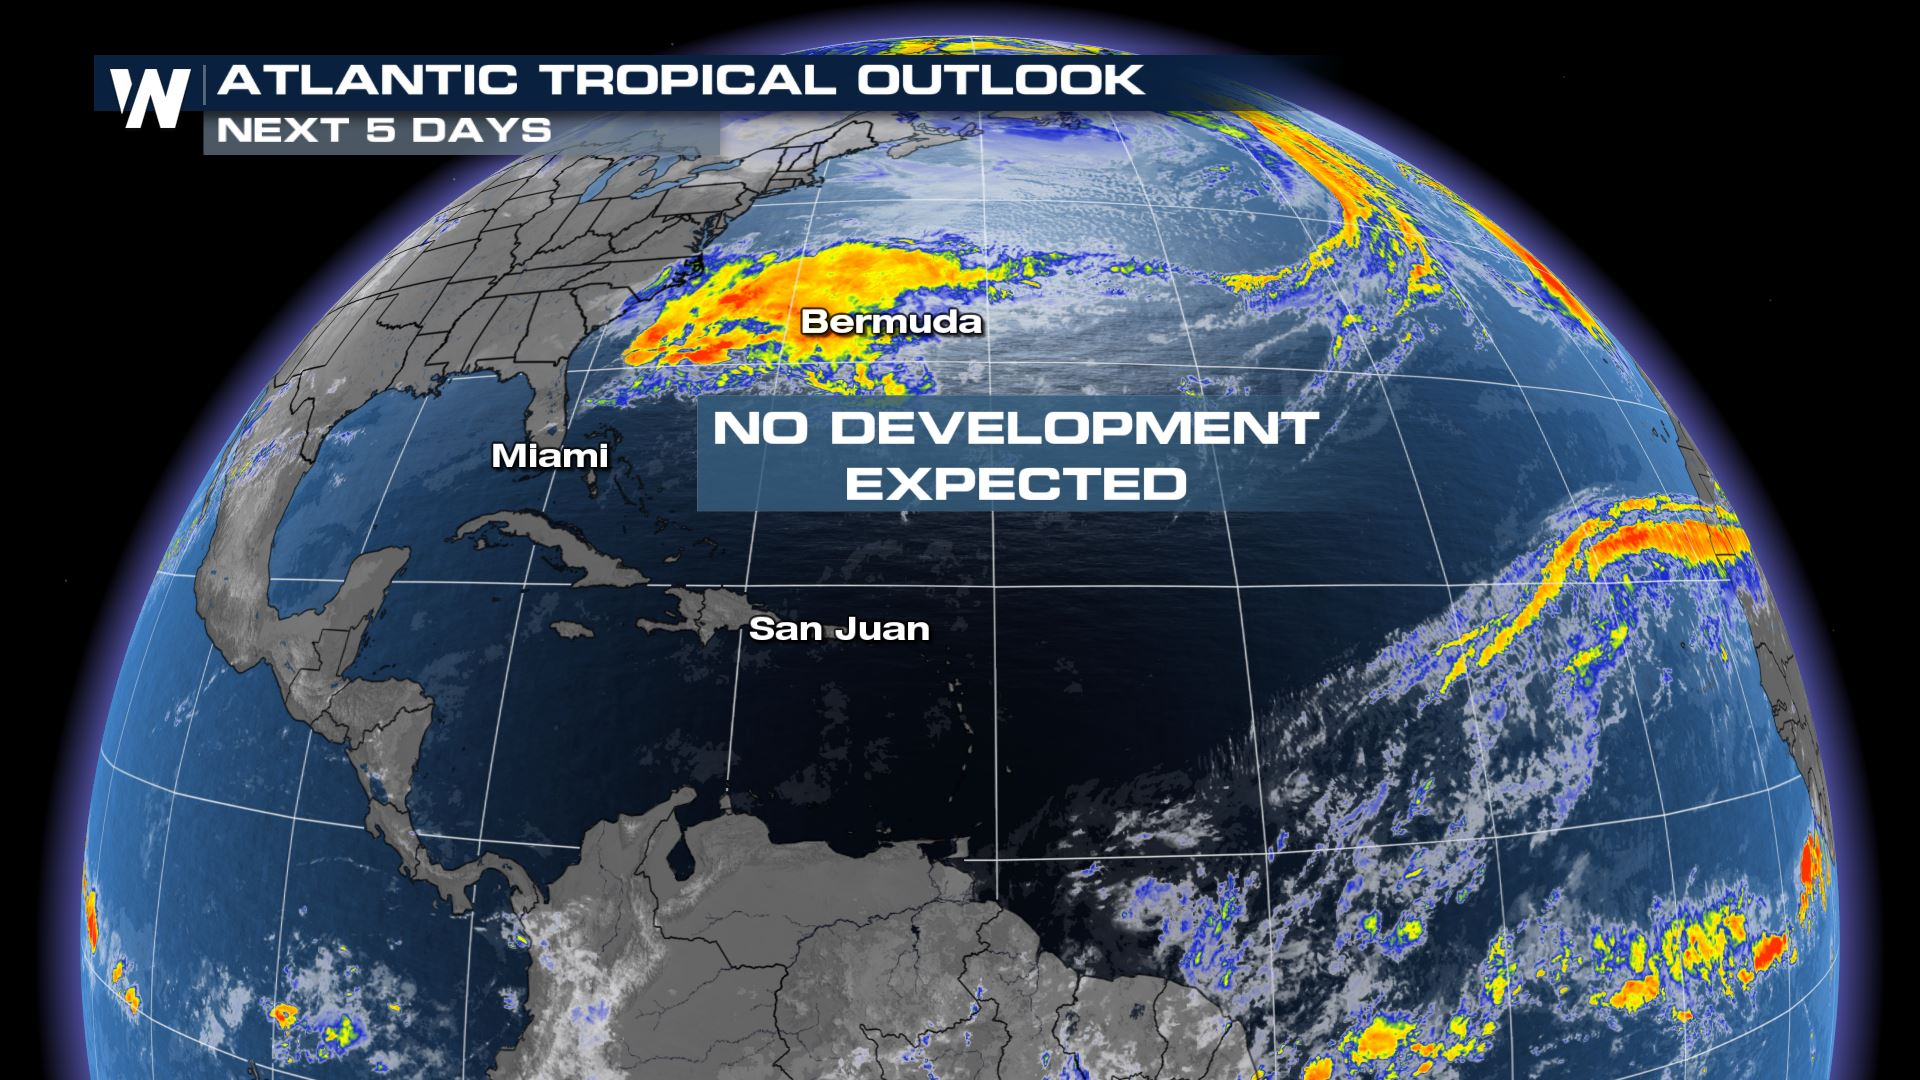 Tropical Weather Outlooks Begin Earlier This Year